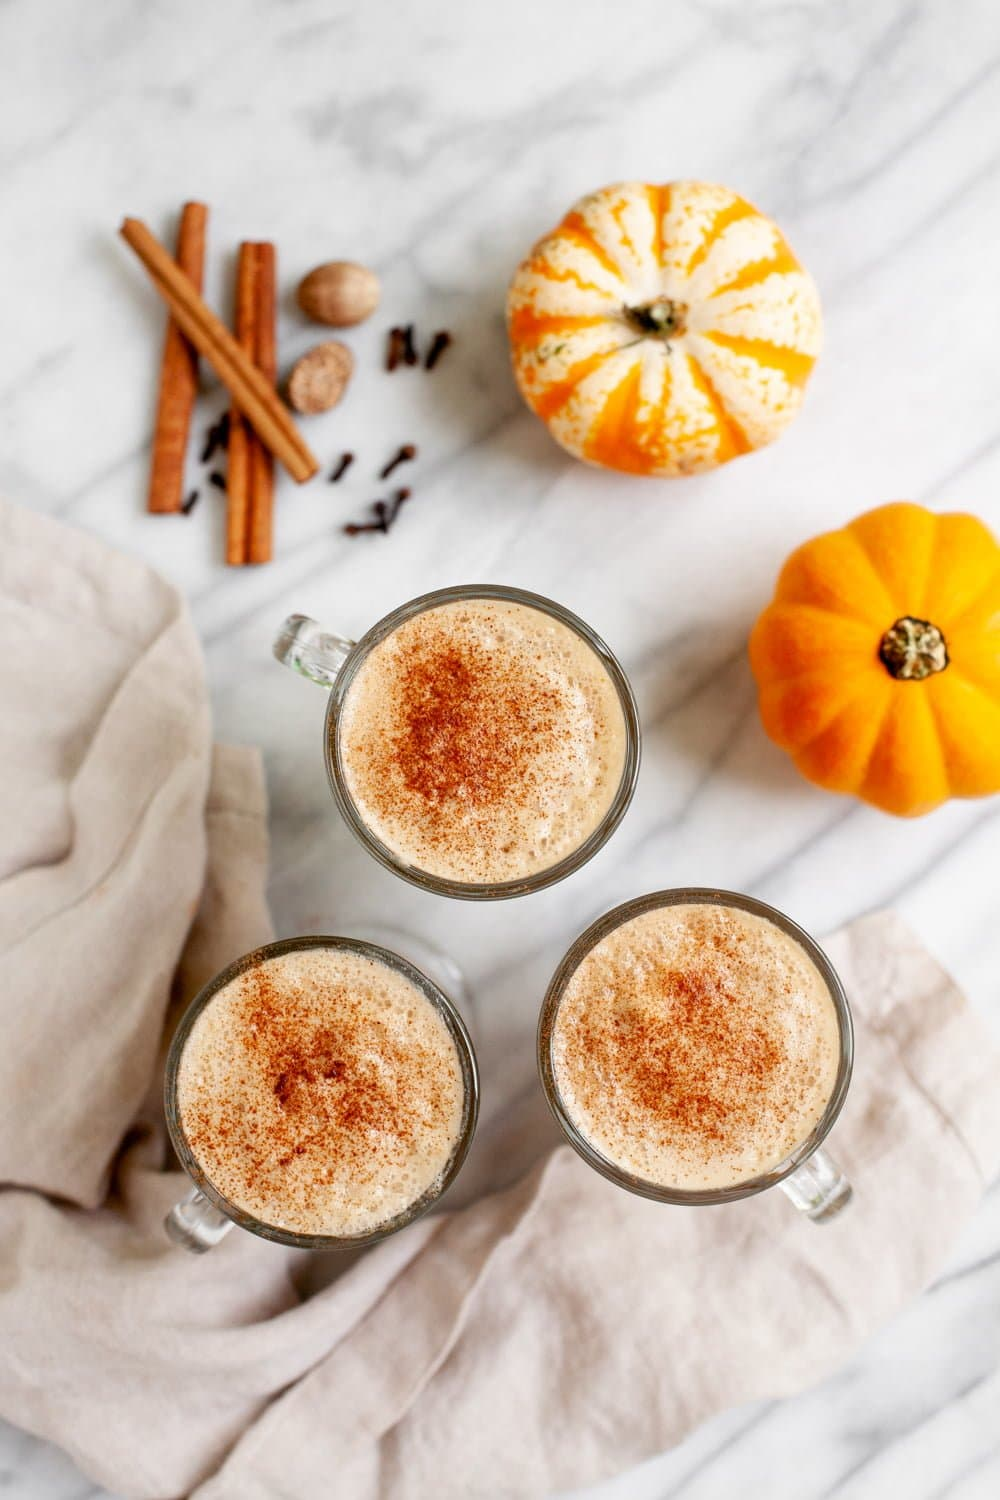 Overhead shot of three glass mugs filled with vegan pumpkin spice lattes and topped with cinnamon, with whole spices mini pumpkins nearby